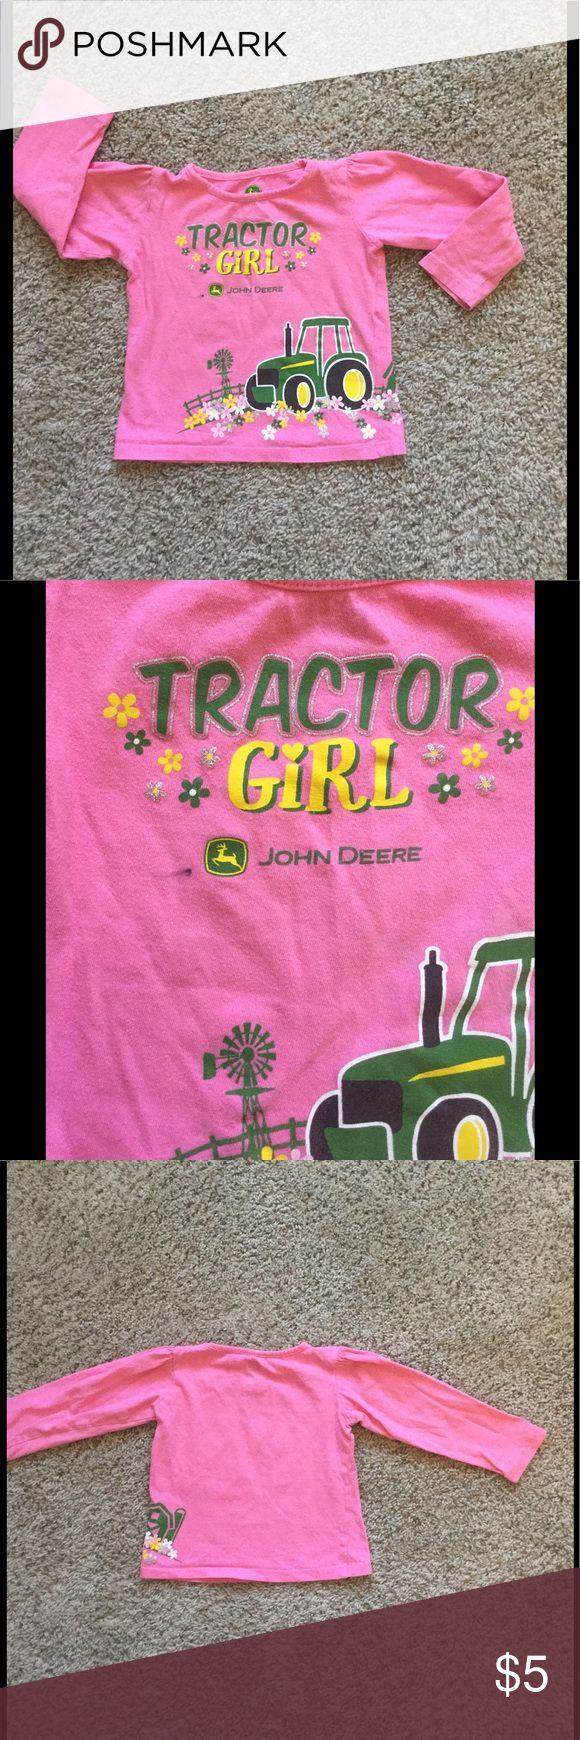 """John Deere toddler top Adorable """"Tractor Girl"""" long sleeved top. Used condition, has spot on front as seen in pic 2. Priced accordingly. John Deere Shirts & Tops Tees - Long Sleeve"""